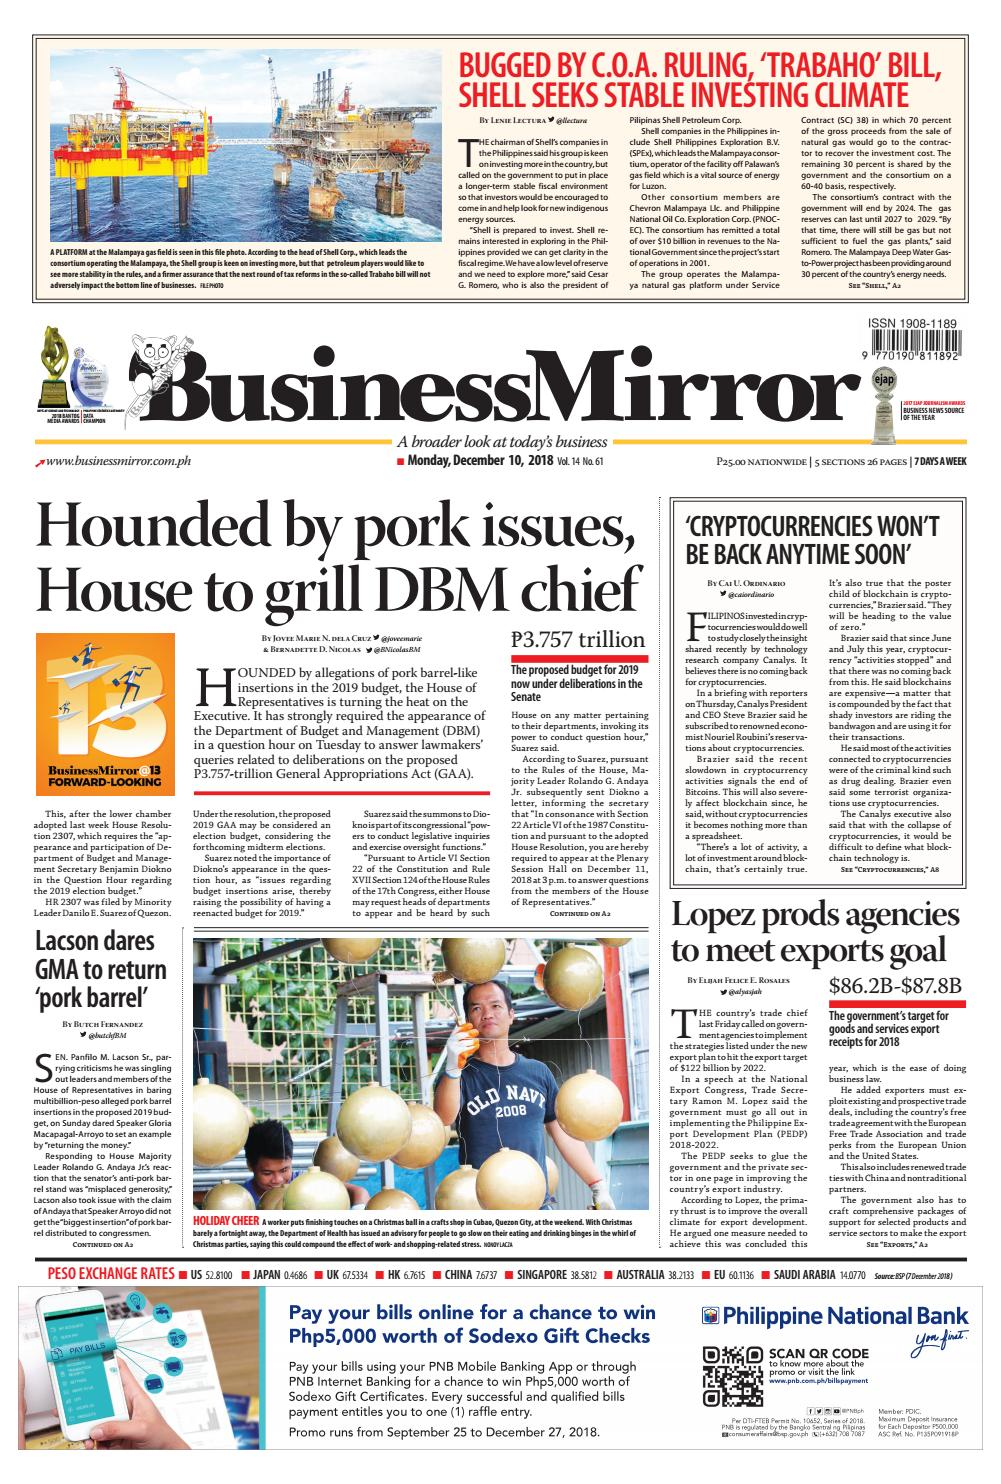 BusinessMirror December 10, 2018 by BusinessMirror - issuu